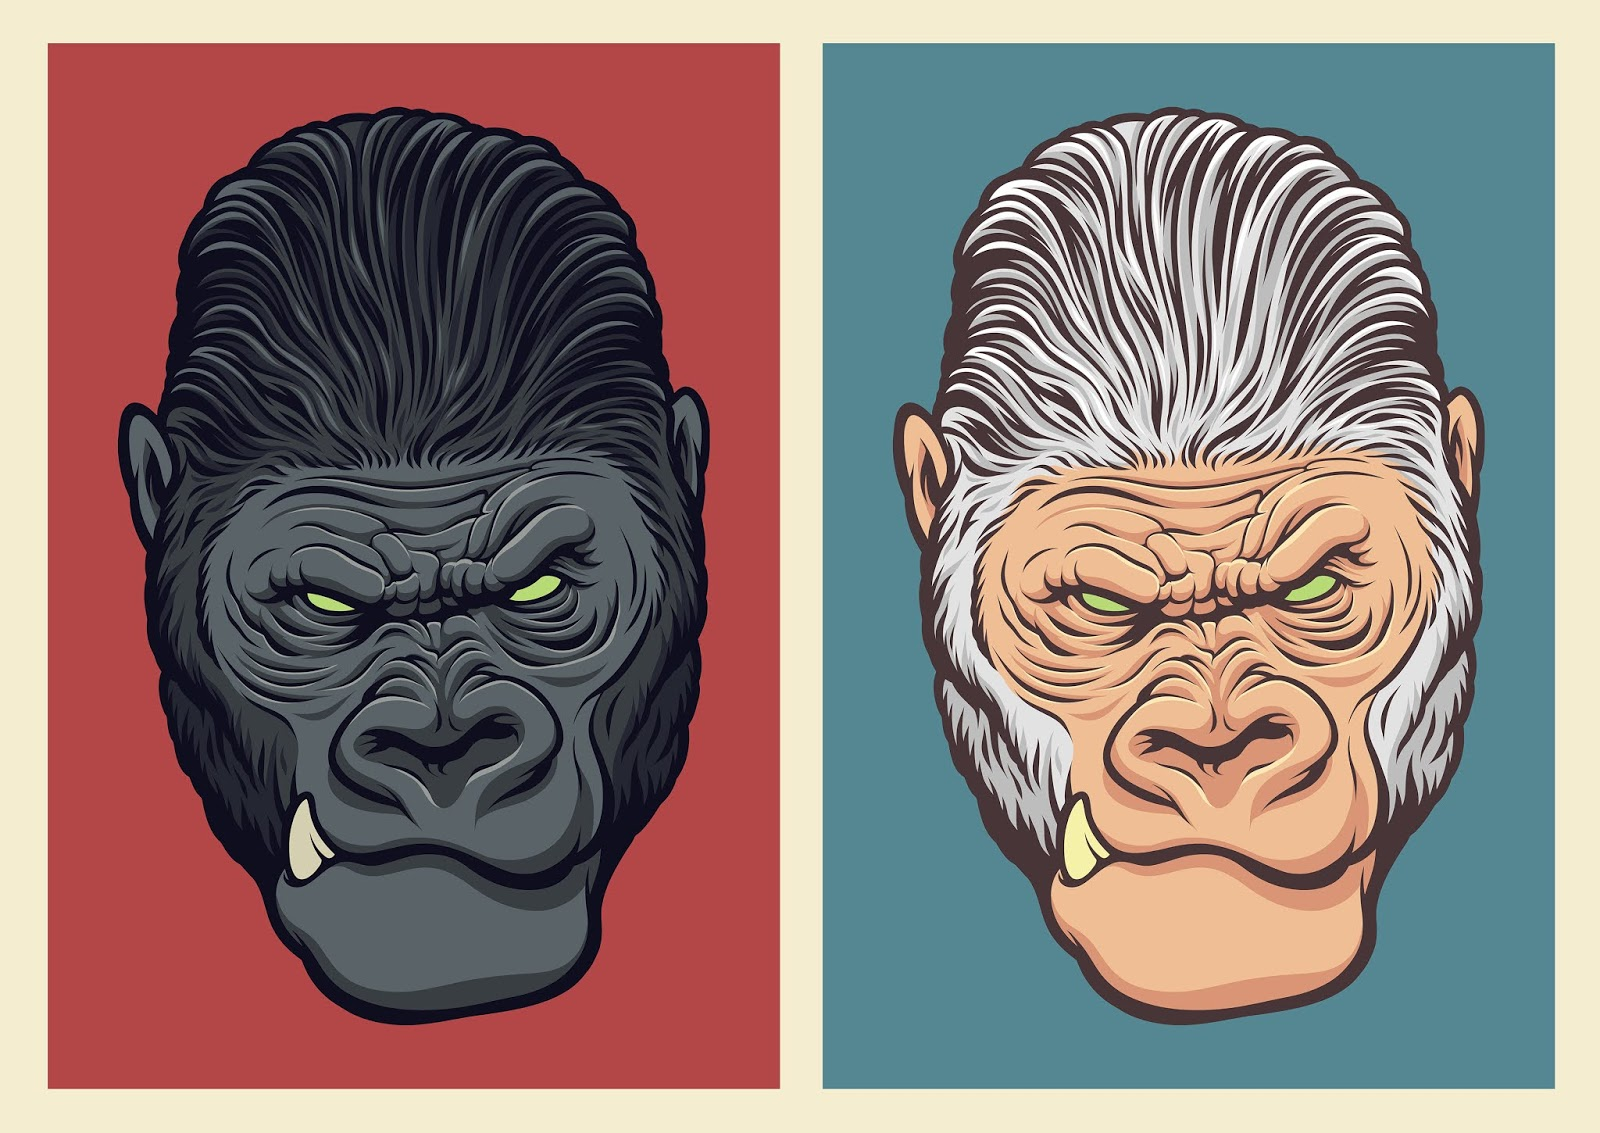 Albino Gorilla Illustration Free Download Vector CDR, AI, EPS and PNG Formats